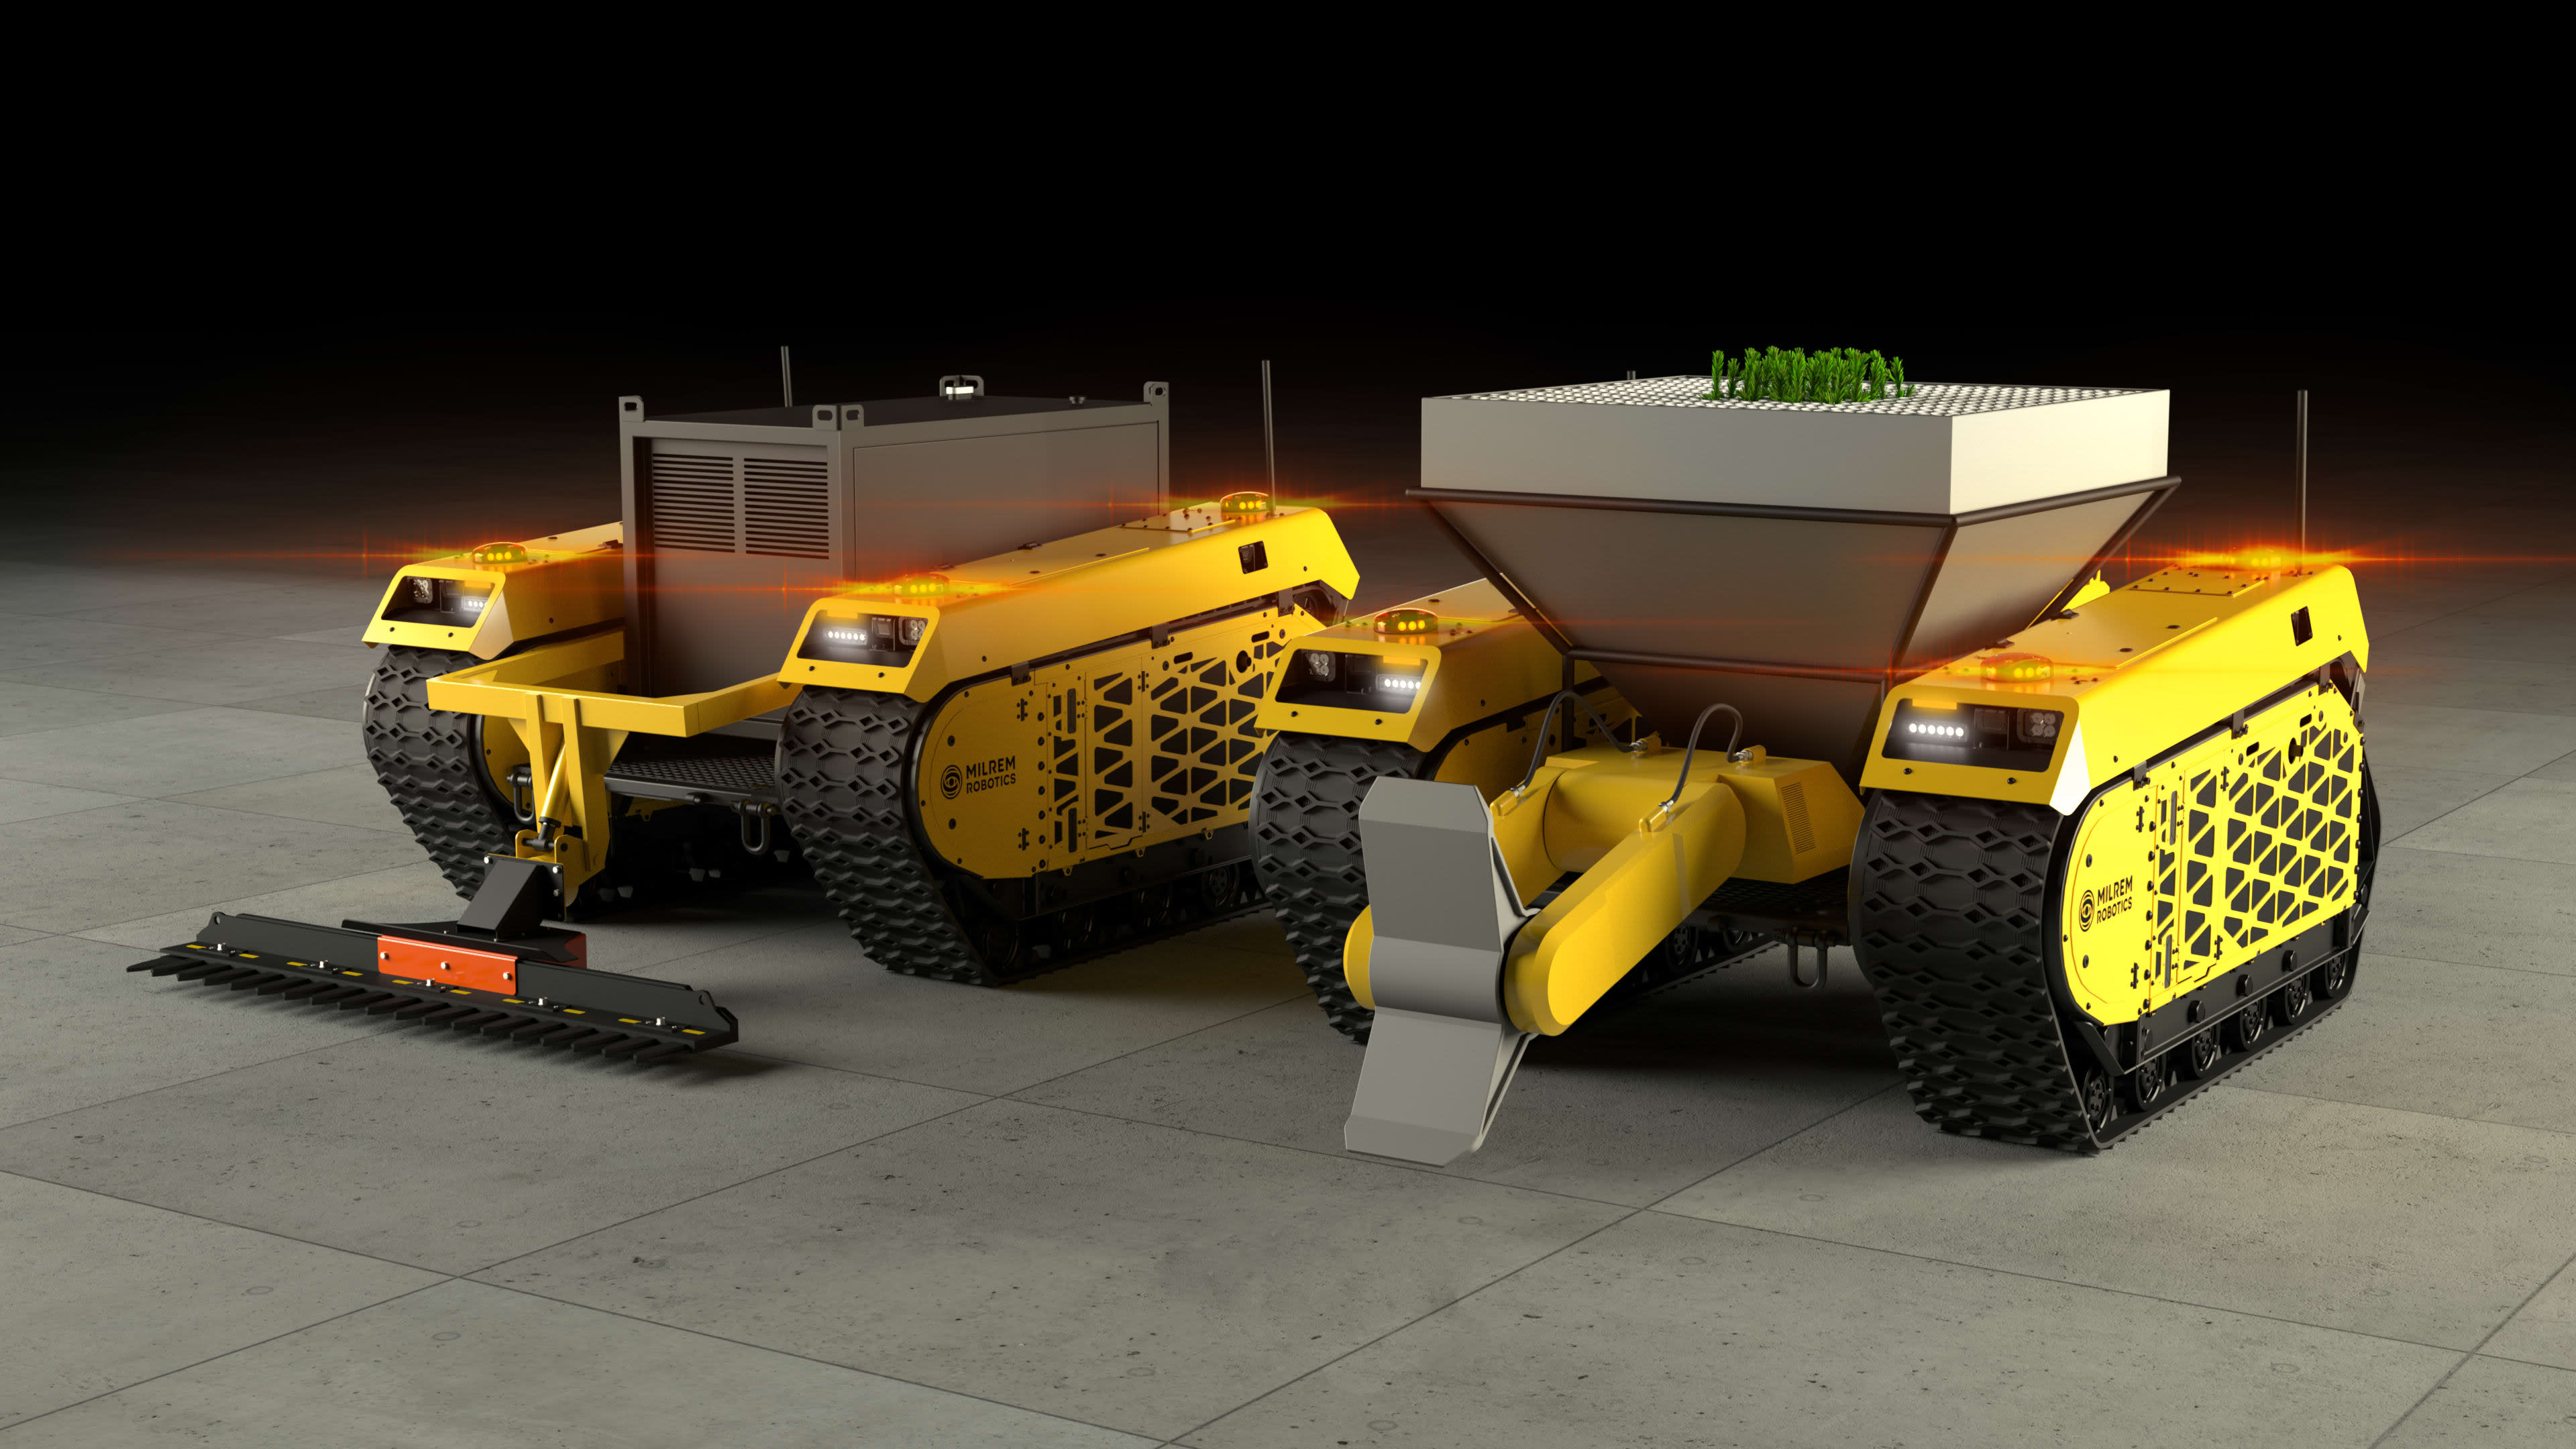 Future of planting with the Robotic Forester